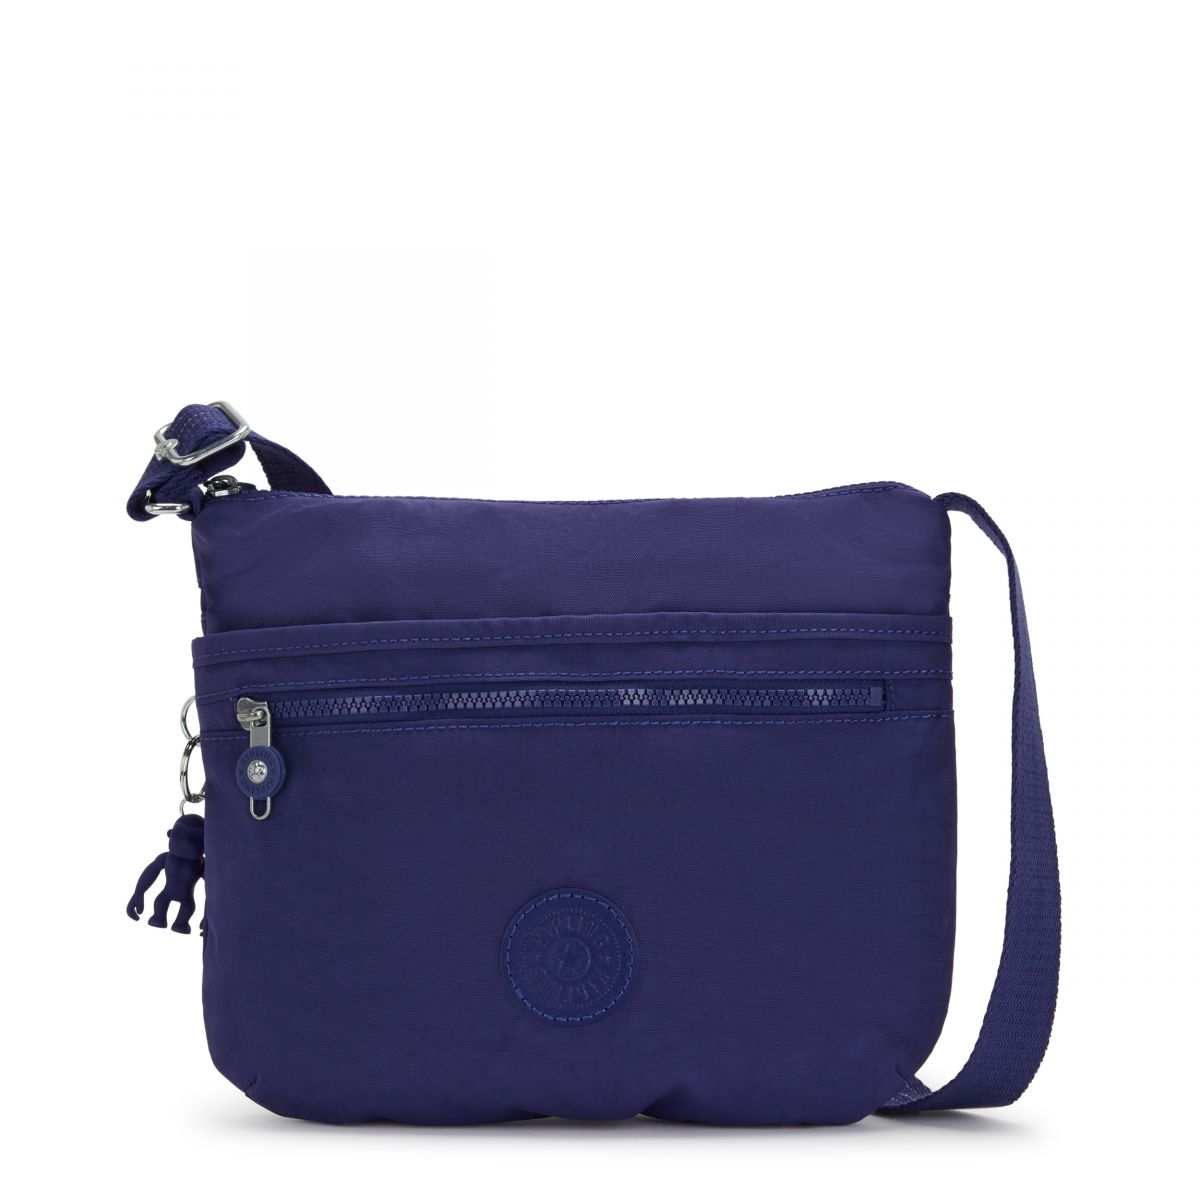 ARTO BAGS by Kipling - Front view